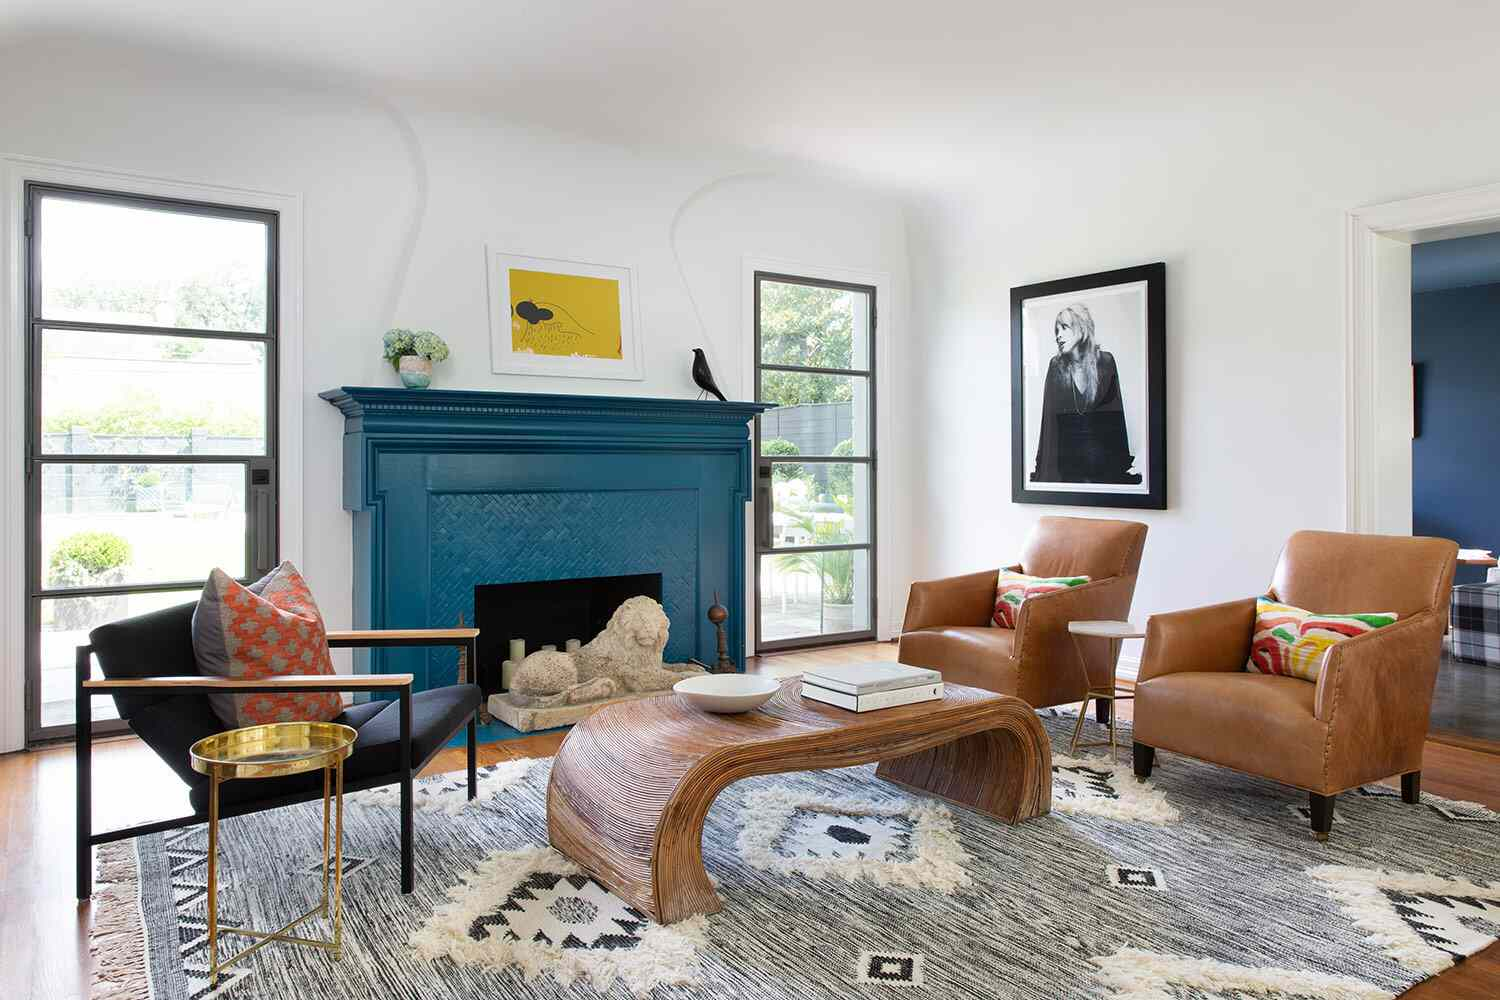 Boho-meets-modern living room with leather chairs, blue mantle and fireplace